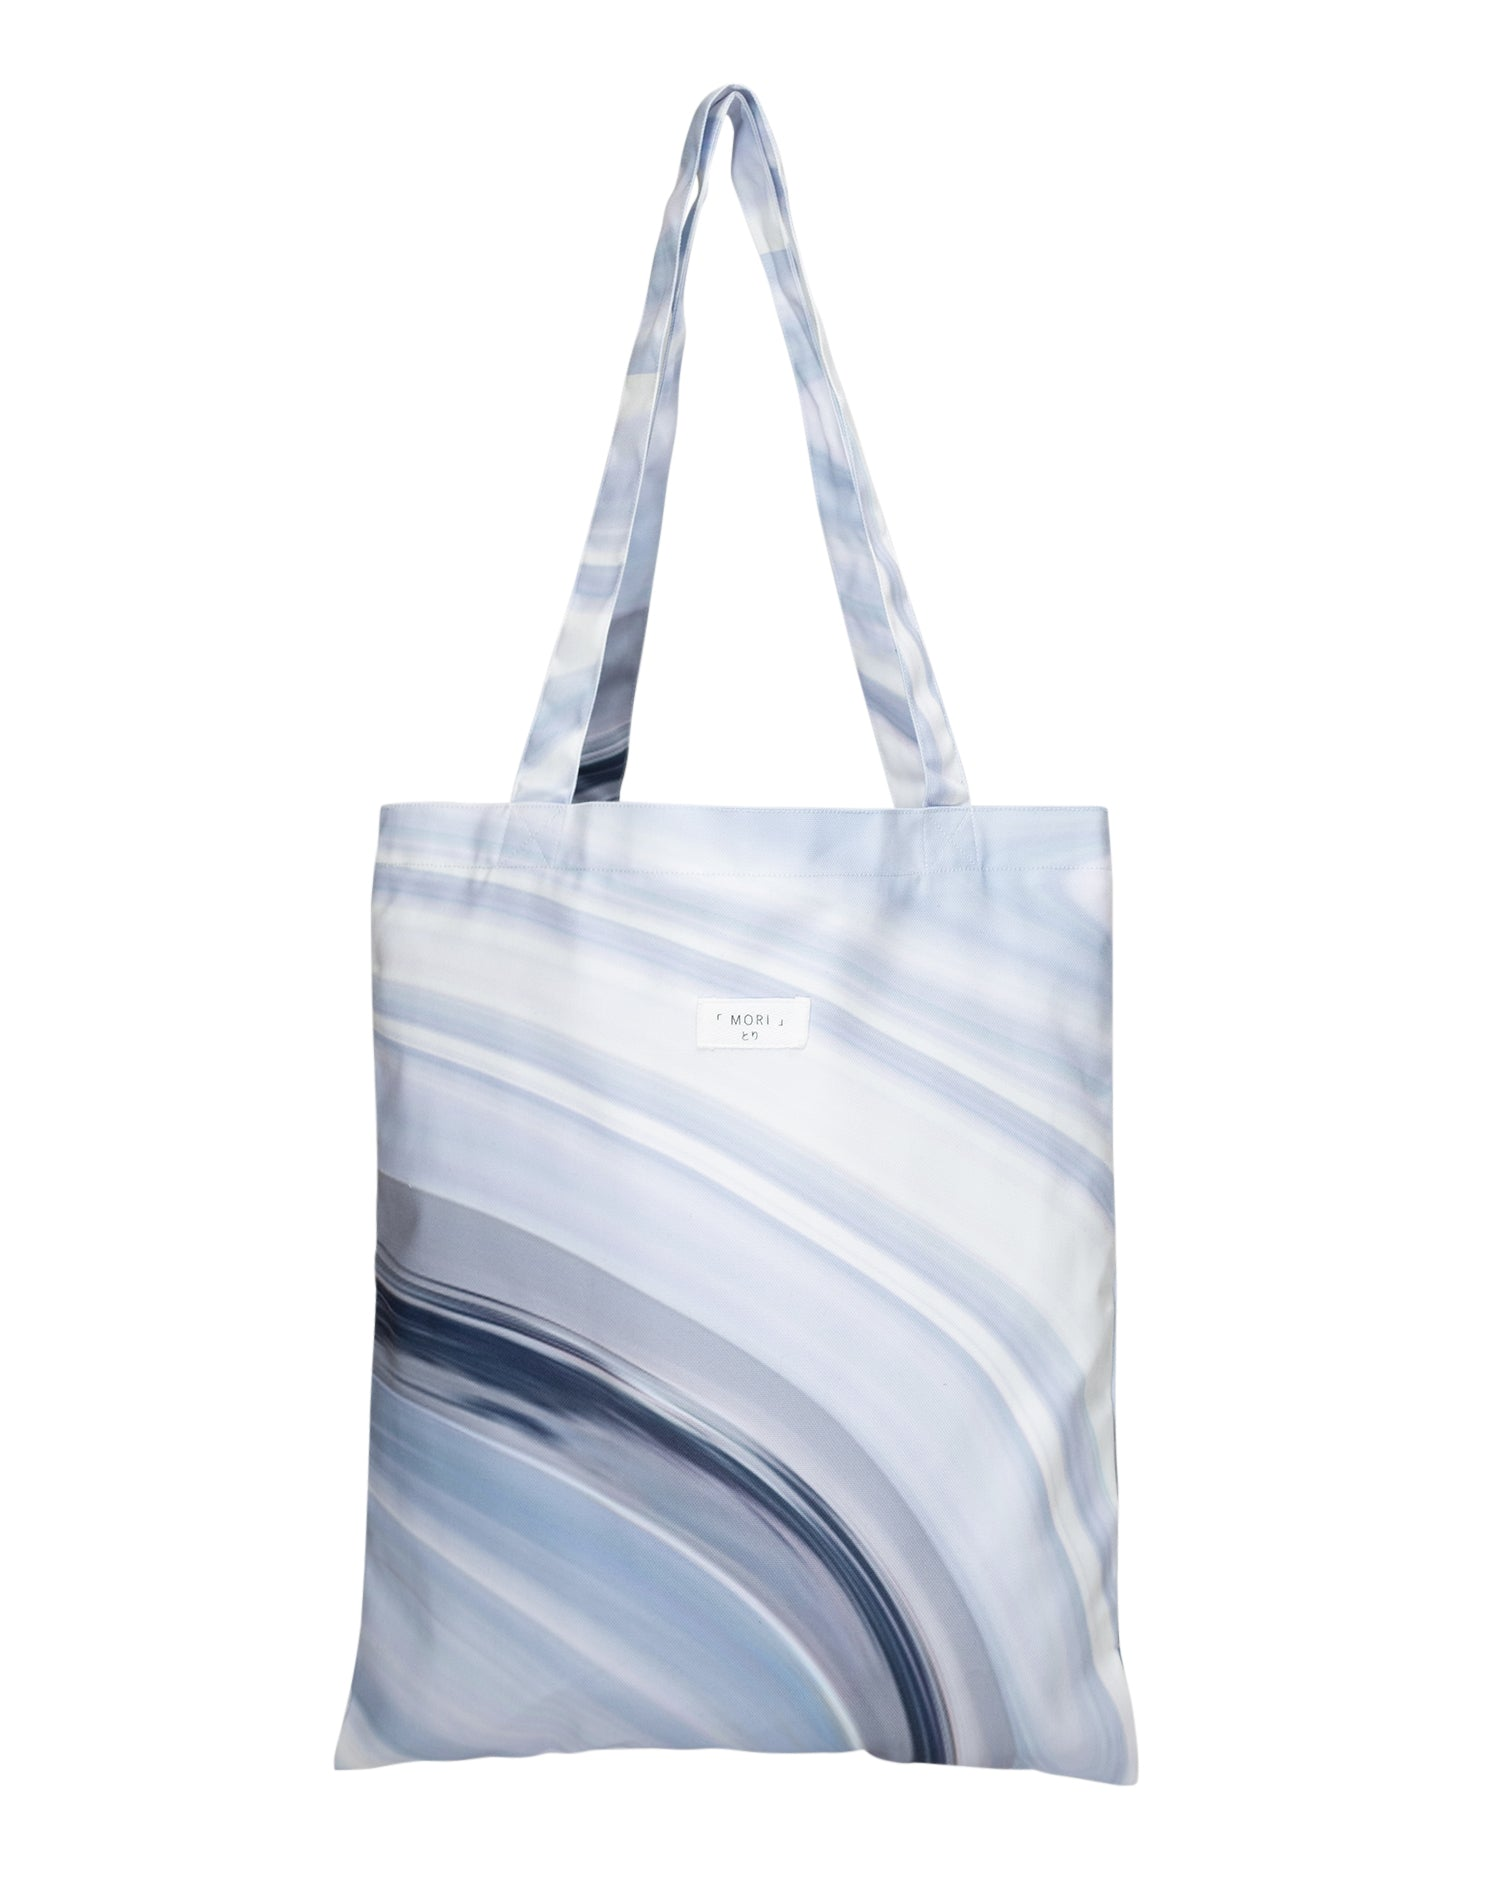 Geode Rays Canvas Tote Bag.晶石紋帆布側背袋